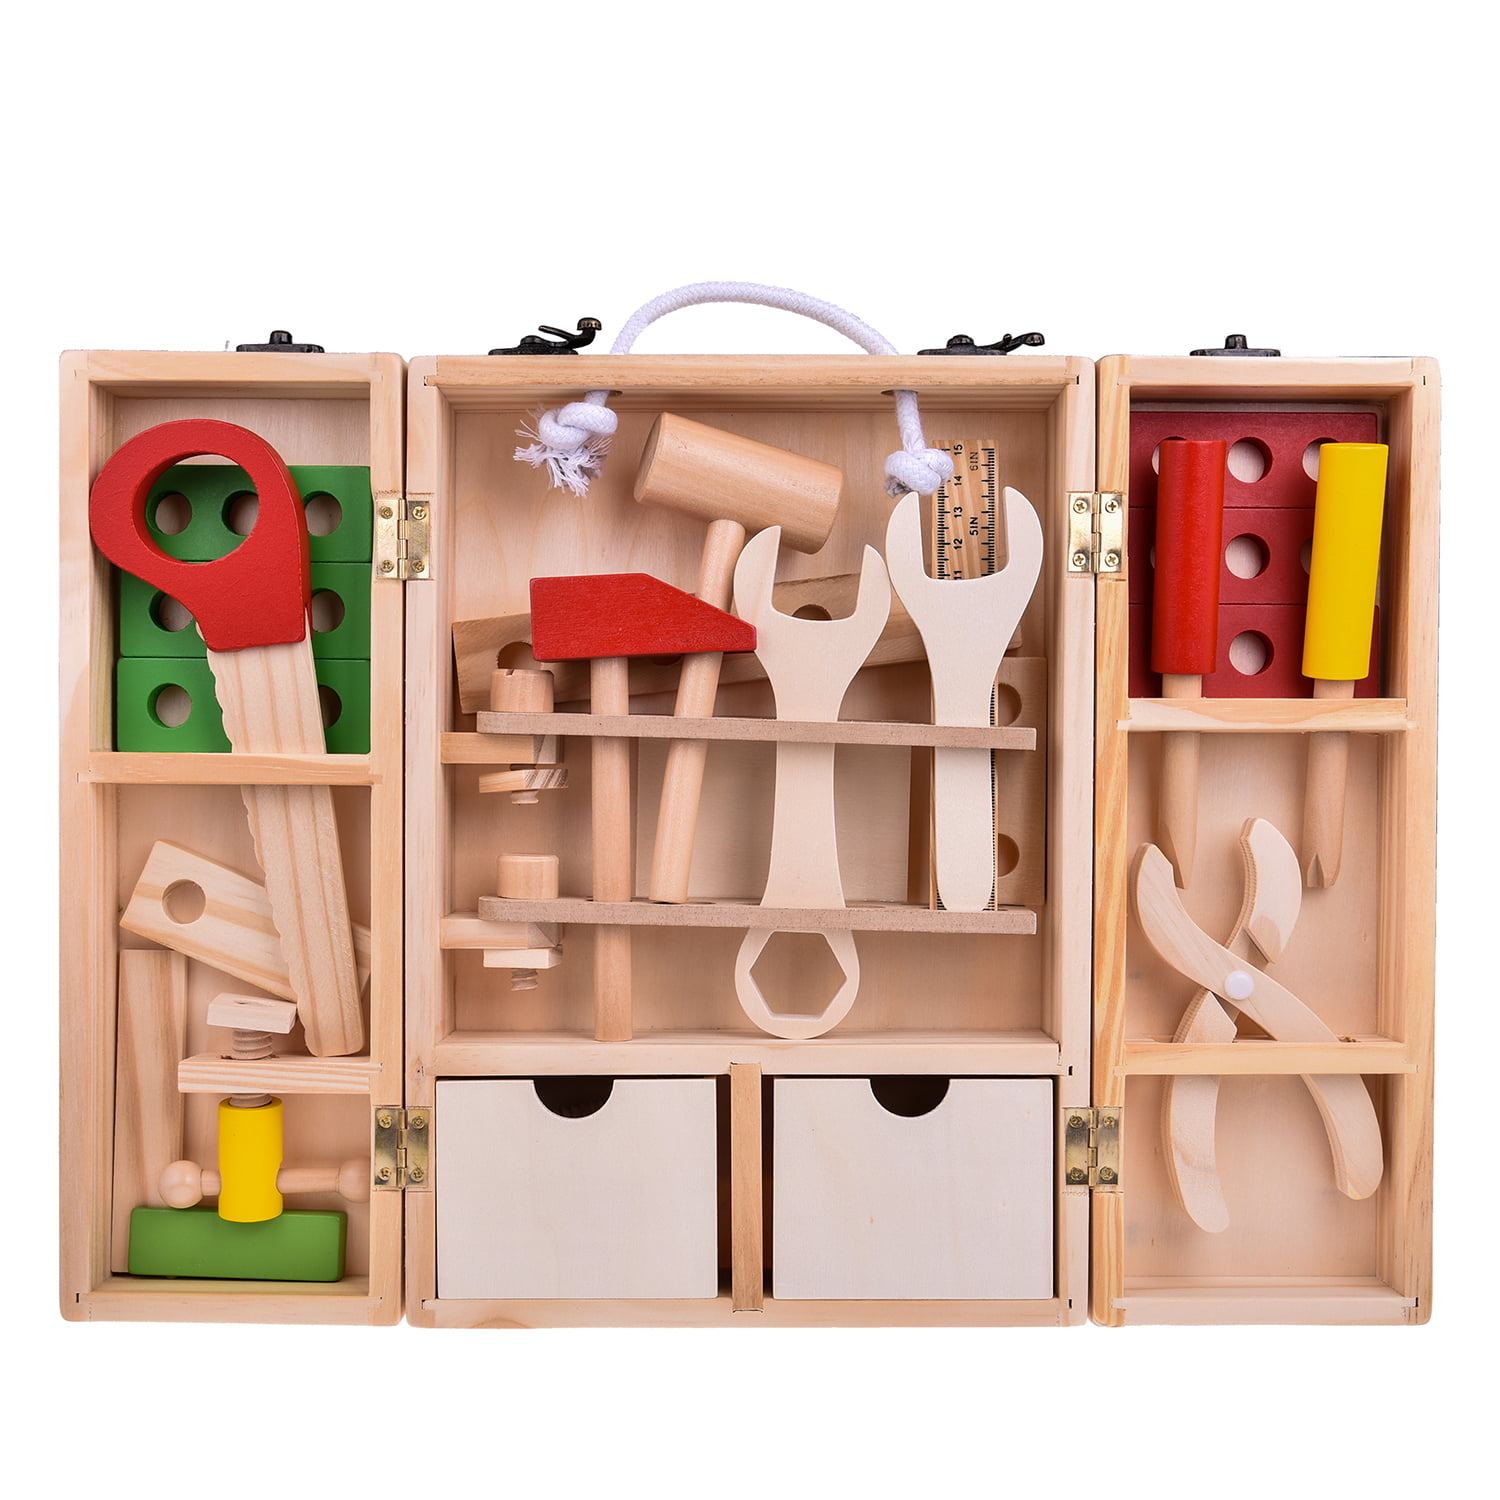 Wooden Tool Set Construction Toys in Durable Case for Kids ...